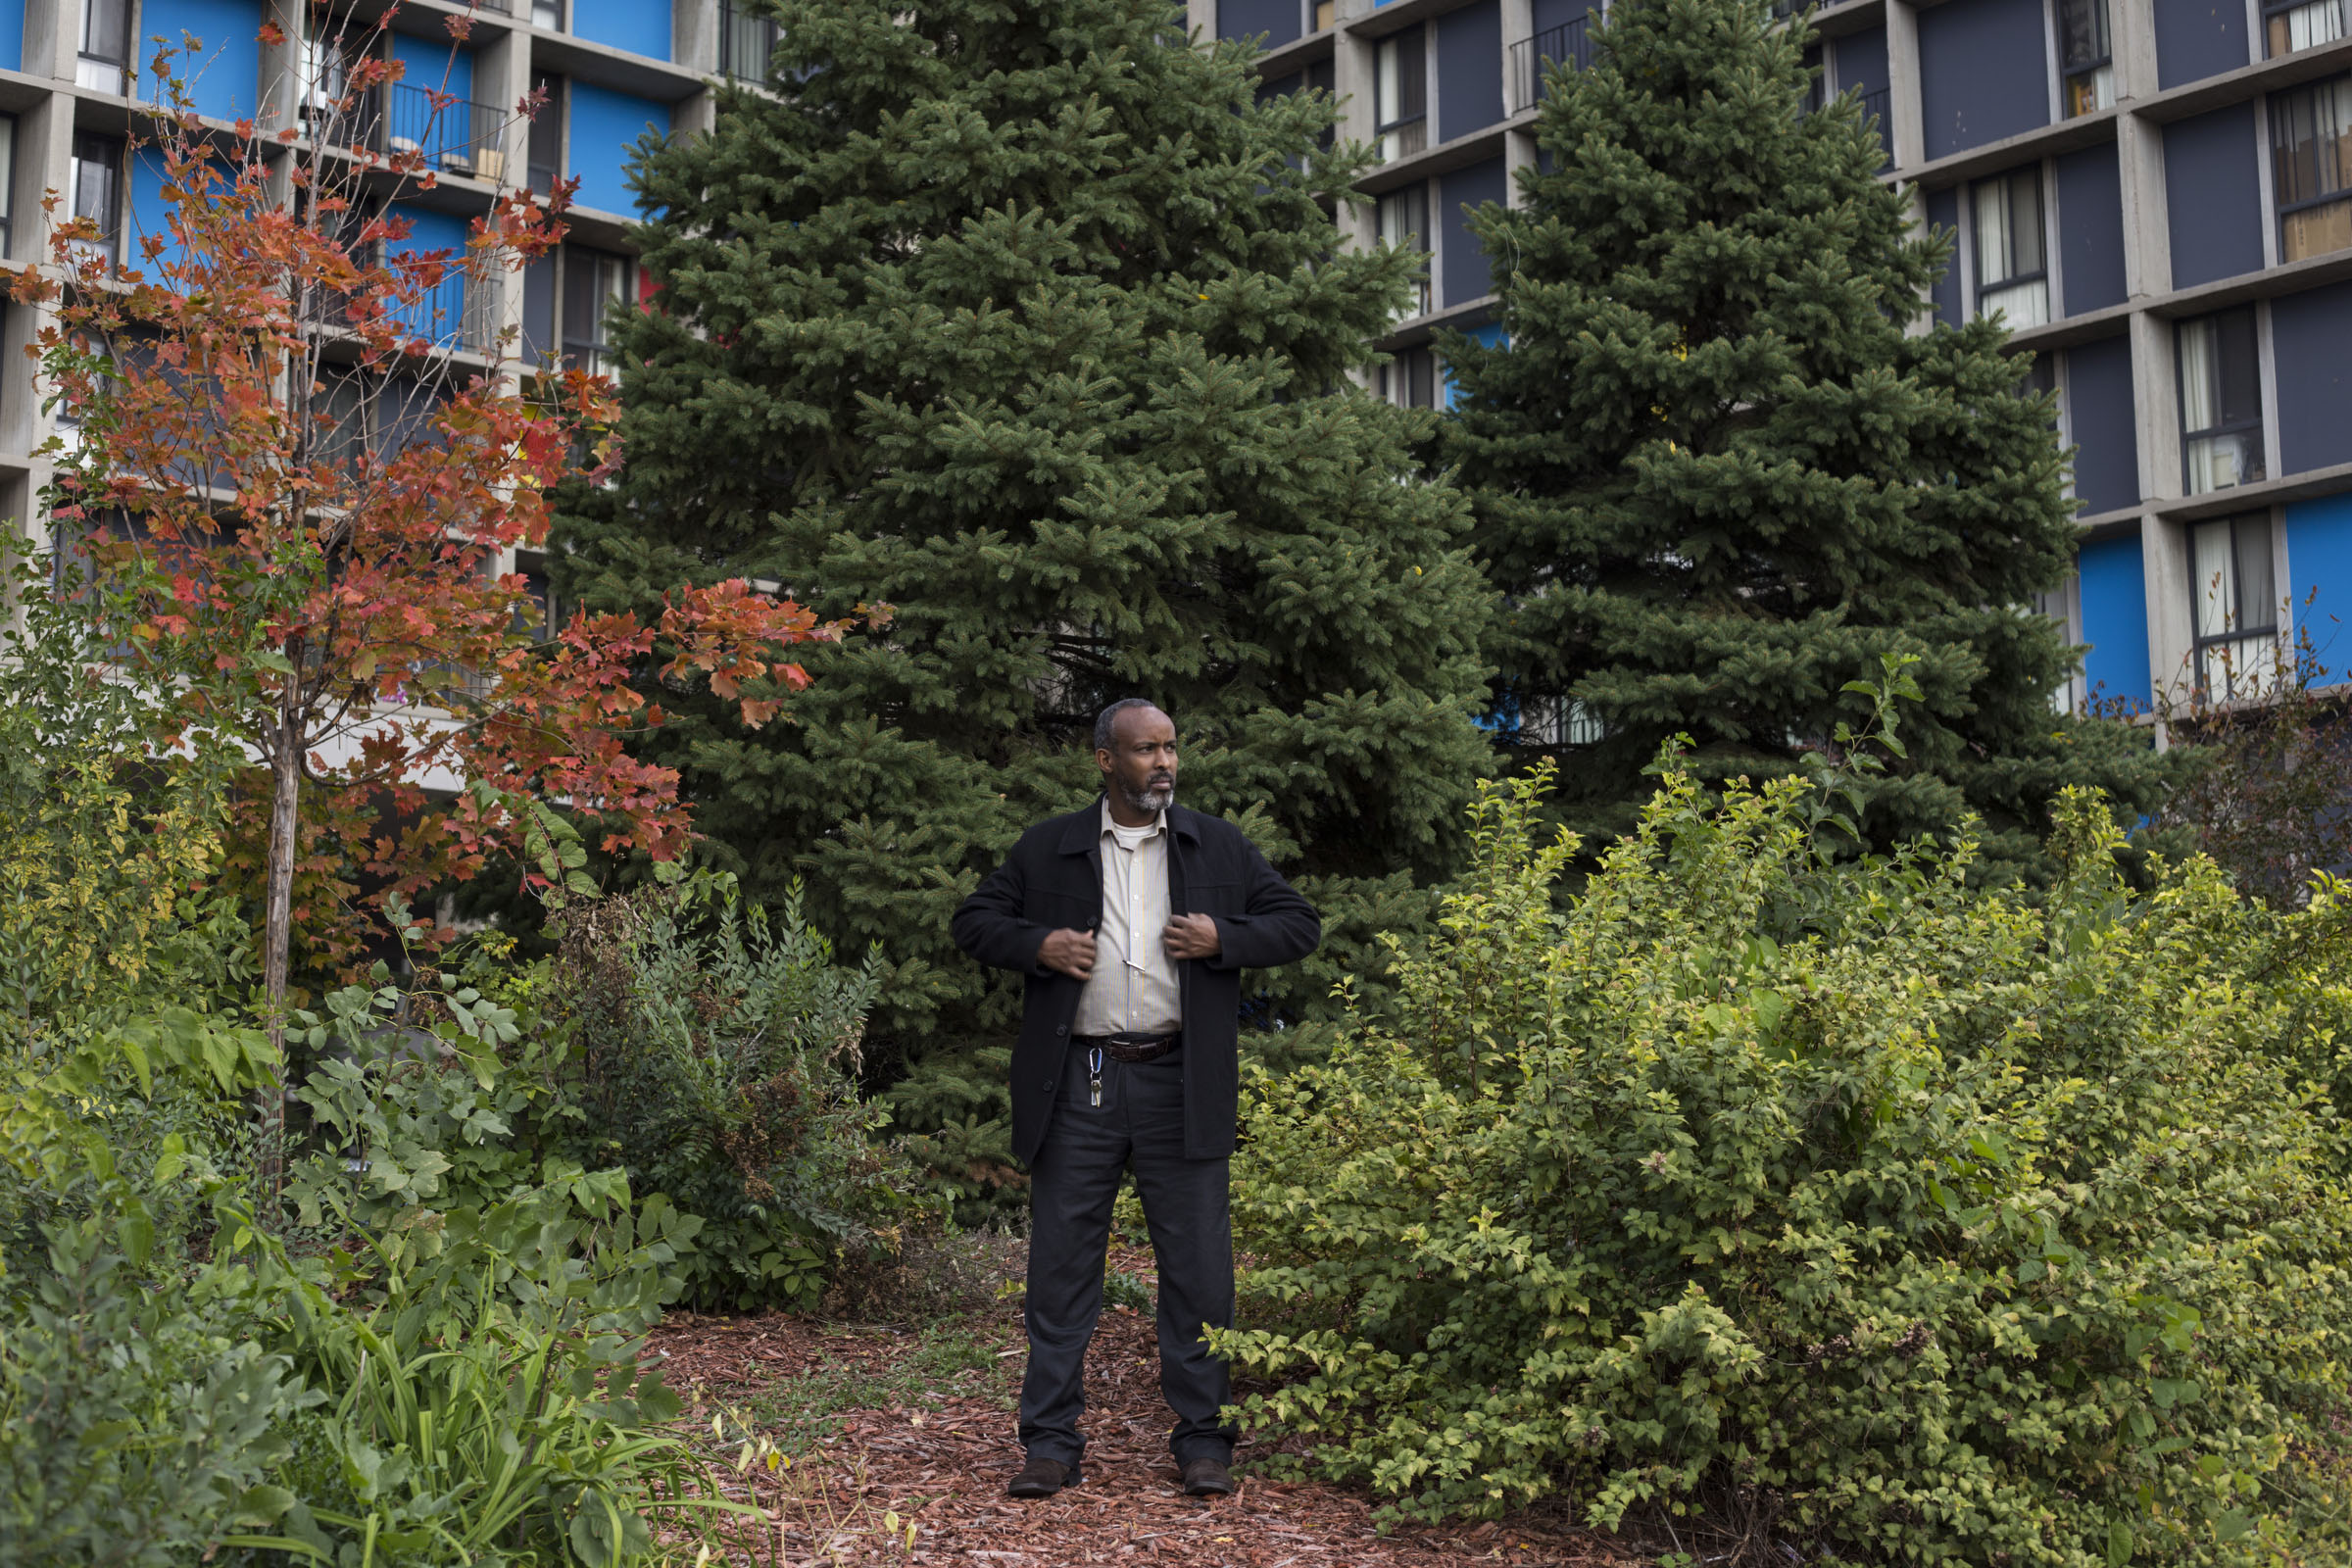 Abdirisaq Abdulle, 42, outside of his apartment building in the Cedar-Riverside neighborhood of Minneapolis, Minn., on Thursday, October 12, 2017. Abdulle, who immigrated to the United States before his children were born, said there was a generational divide between he and his children regarding Donald Trump. His kids, who he said identify more as American, liked the president, while he thinks Trump's rhetoric was anti-Muslim and often false. (Photo by Brittany Greeson)